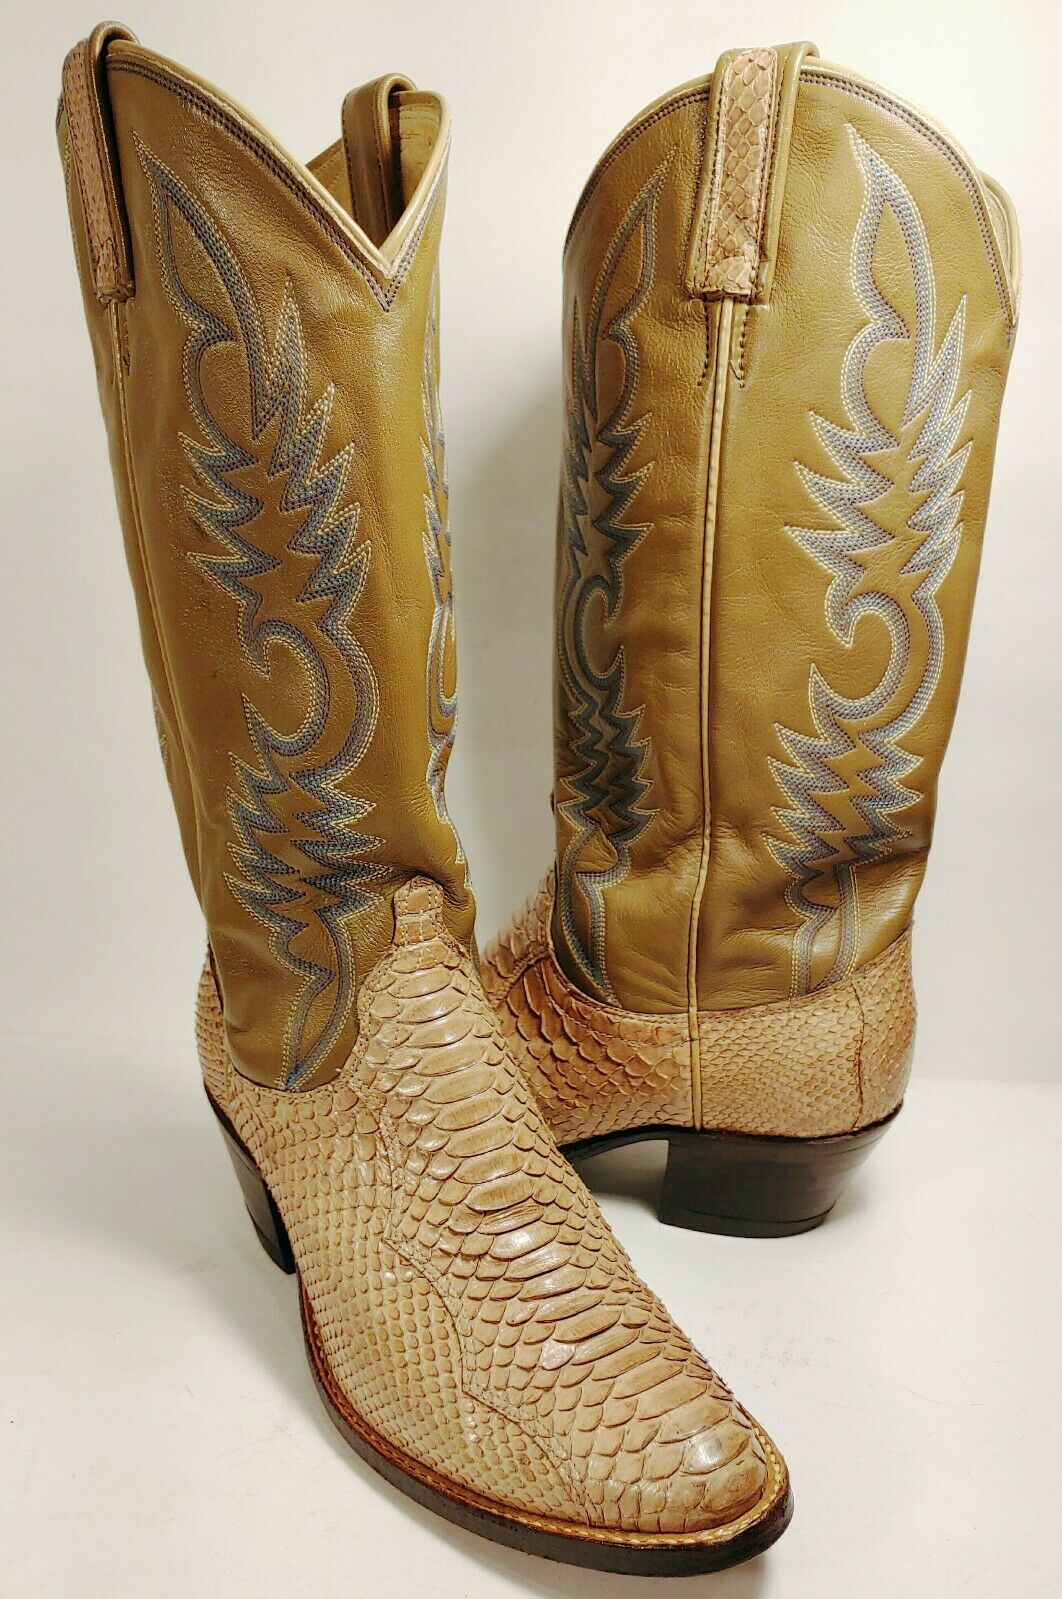 DAN POST Snakeskin Tan Leather Embroidered Cowboy Boots Women's Size 6.5 C EUC